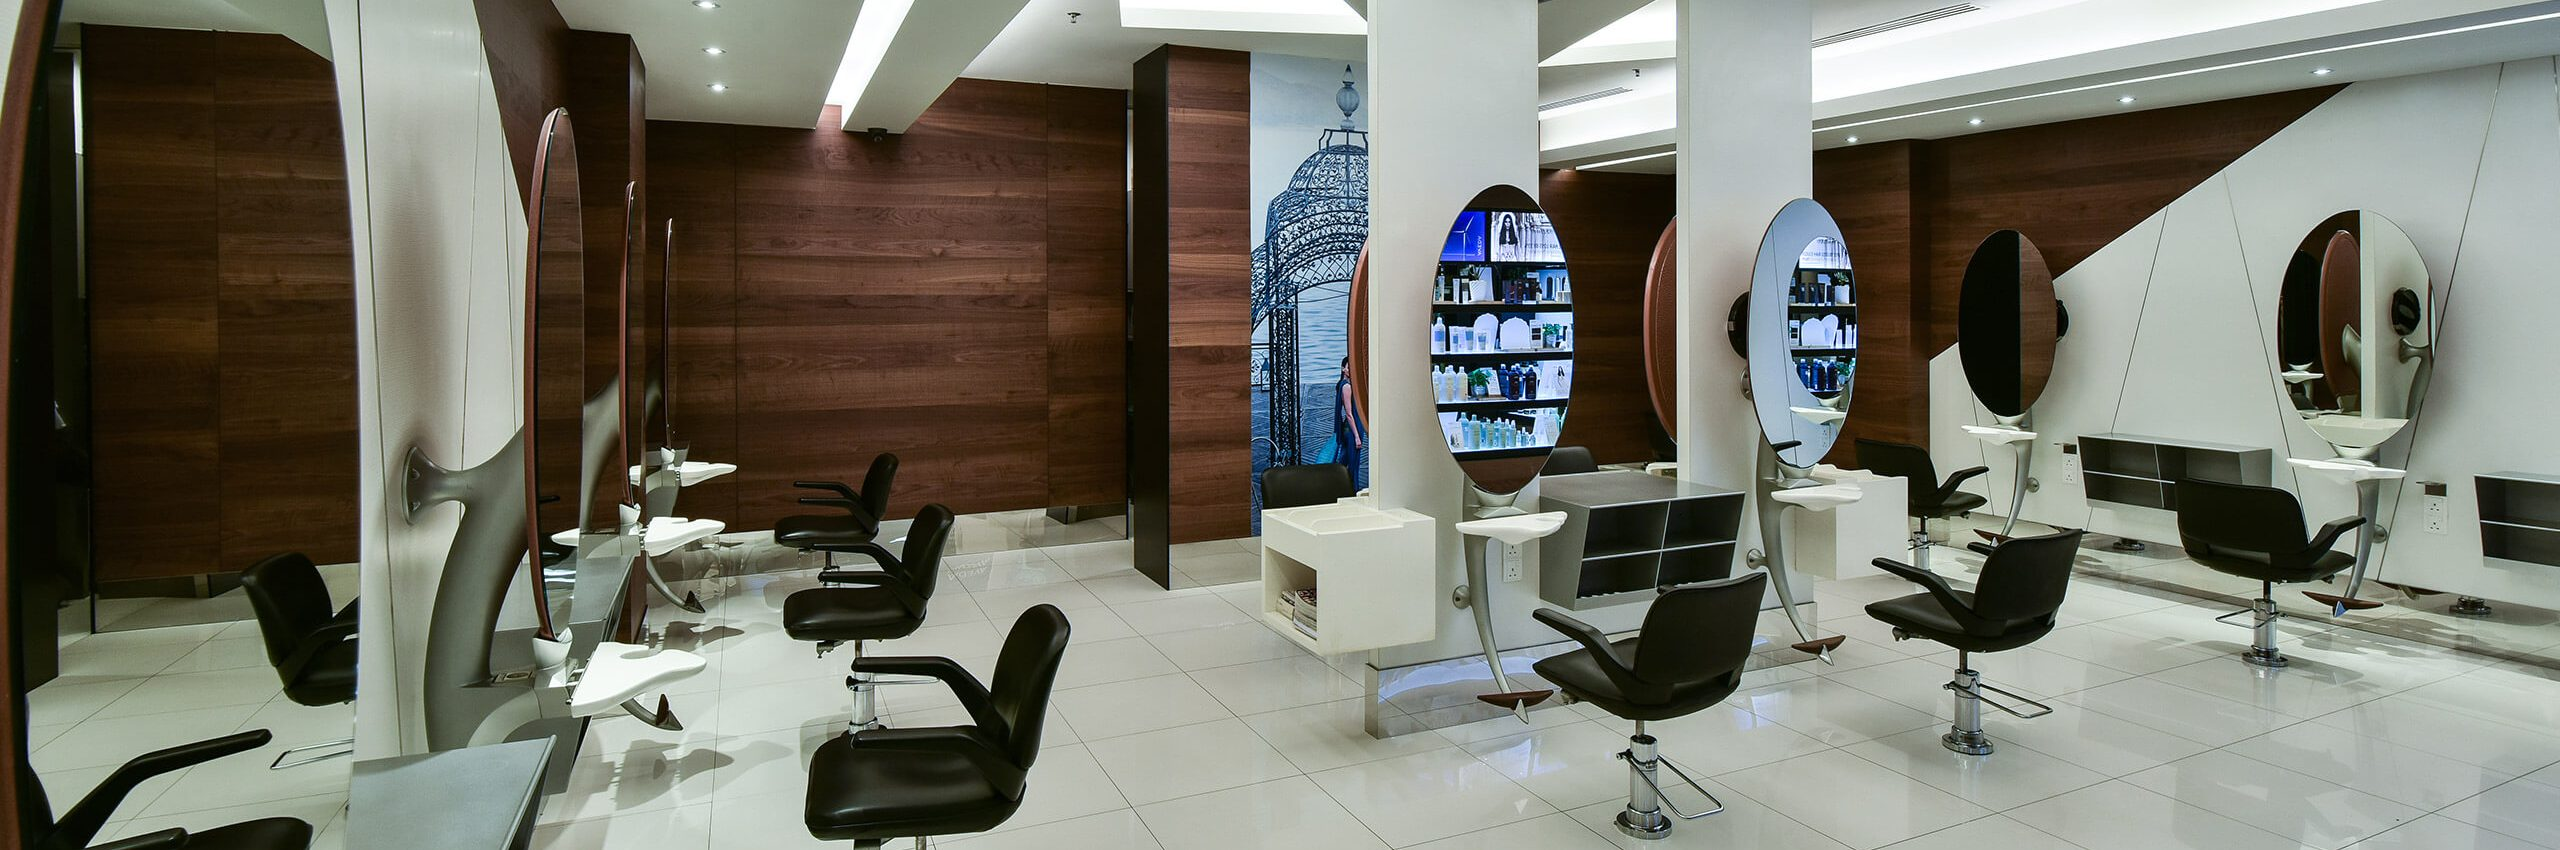 The interior of Restyle Salon in 1 Mont Kiara